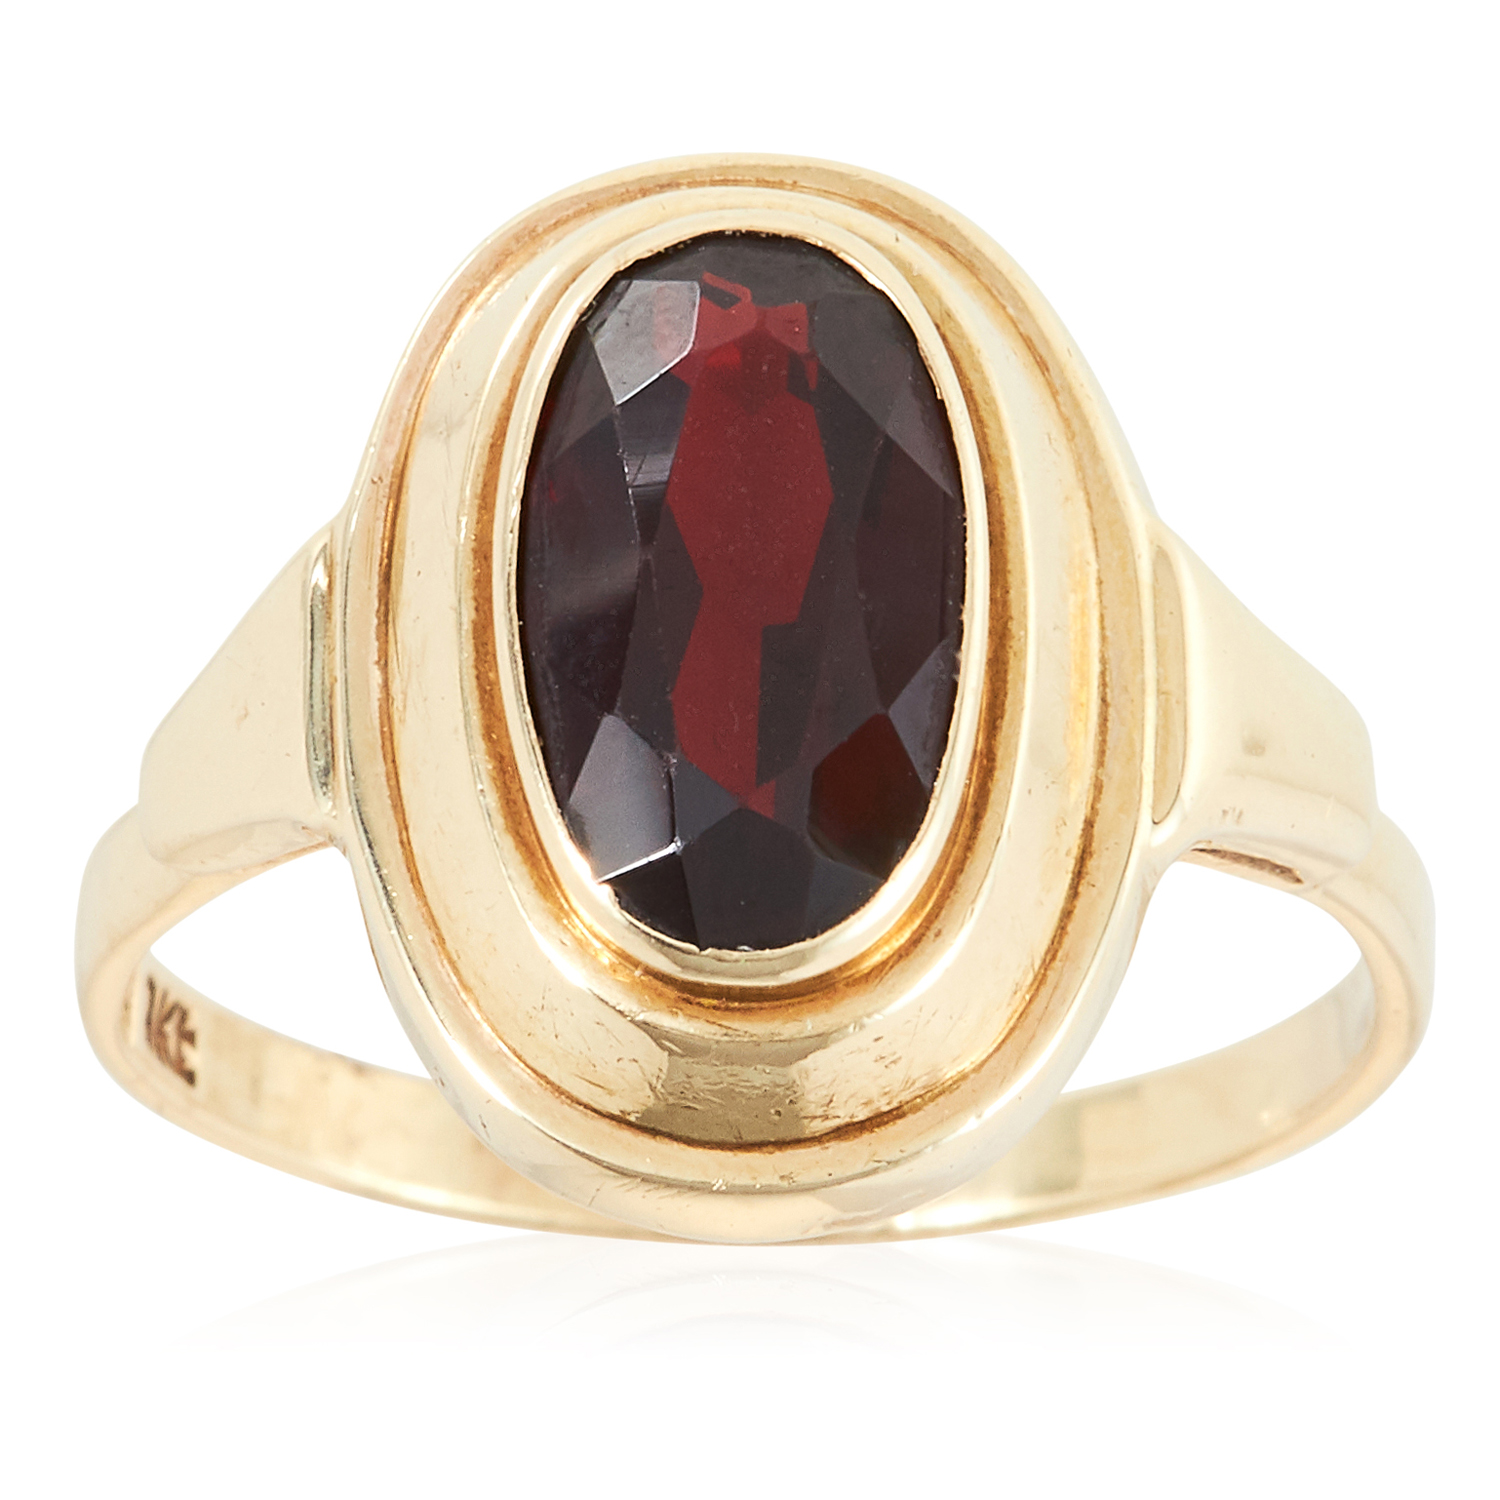 A GARNET DRESS RING in yellow gold, set with an oval cut garnet, stamped 9K, size O / 7, 2.7g.